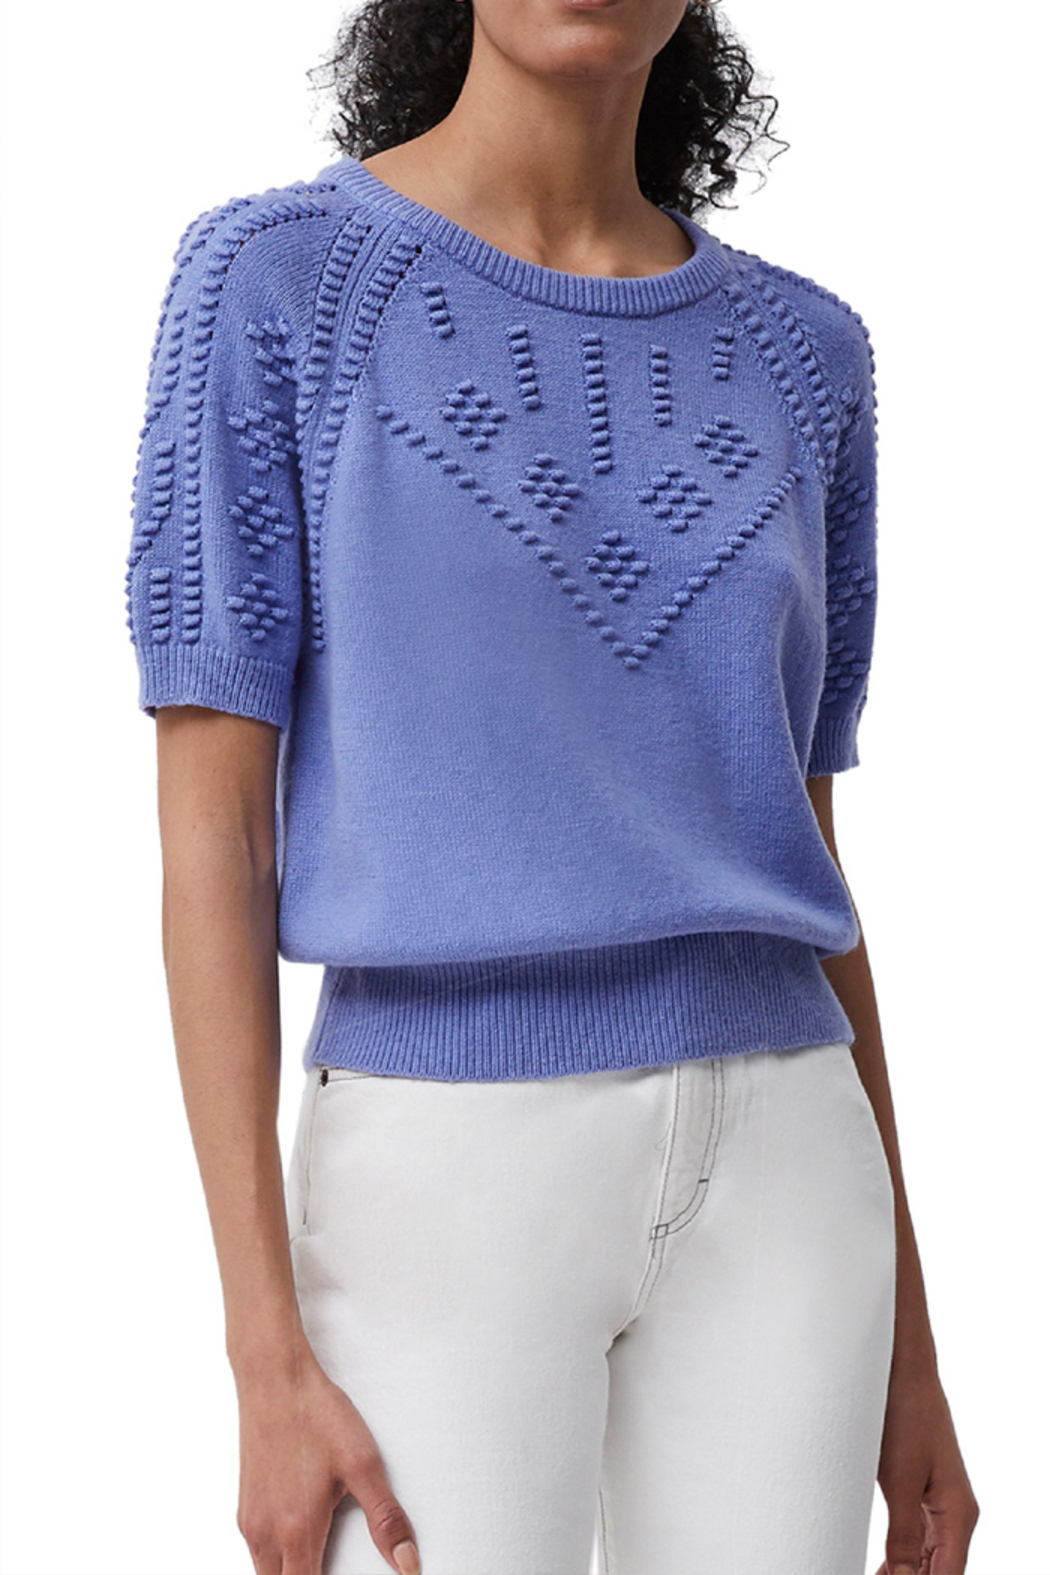 French Connection Karla Knitted Short Sleeve Jumper - Main Image